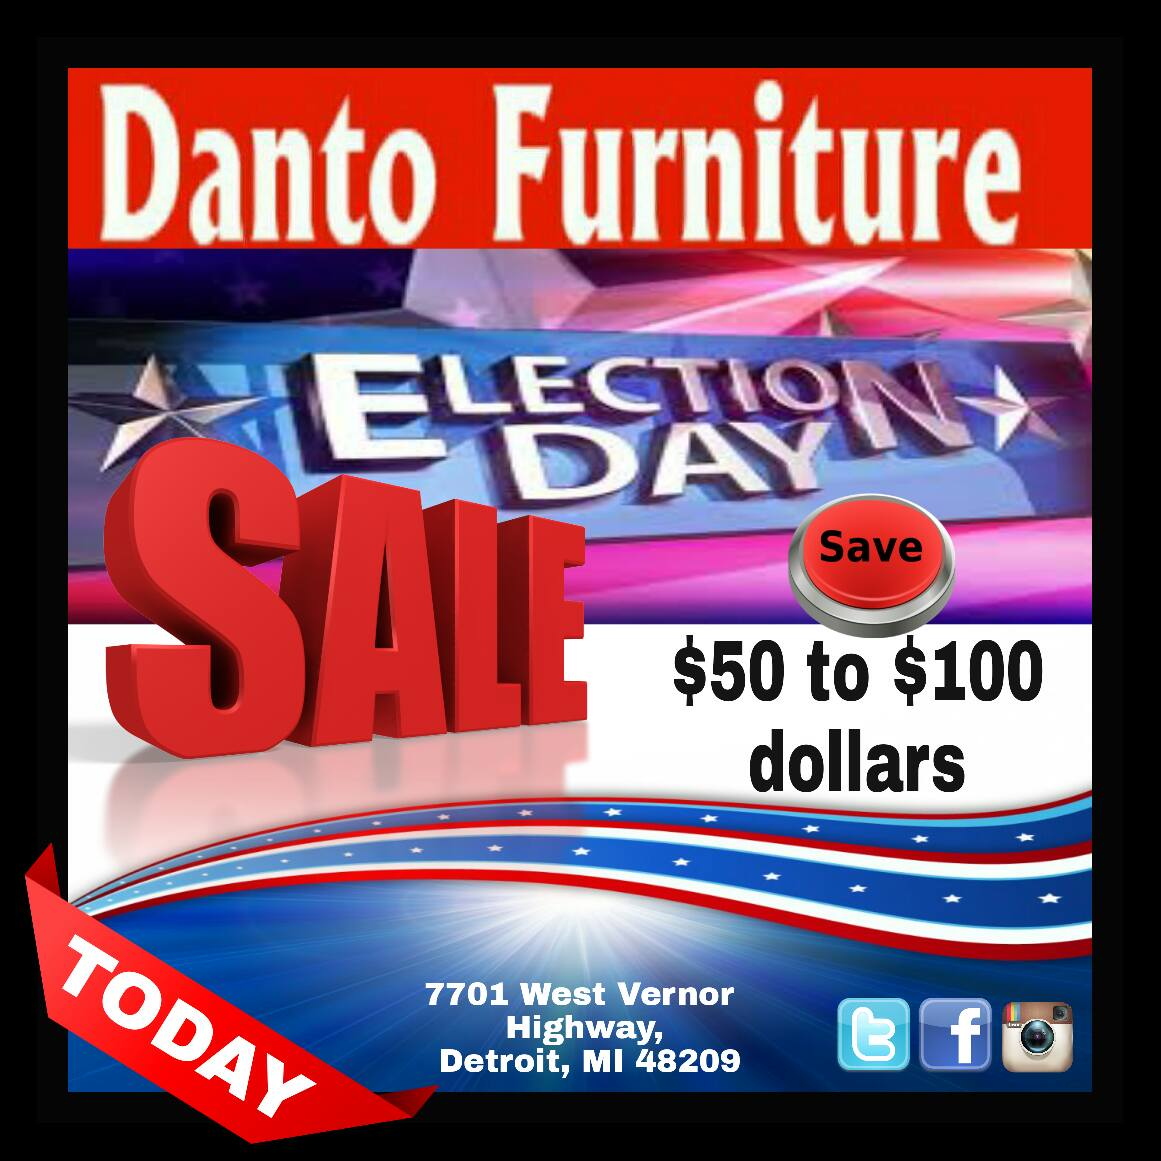 #ElectionDay SALE ☆ Join Us At #Danto 10% Off Of $50 Or